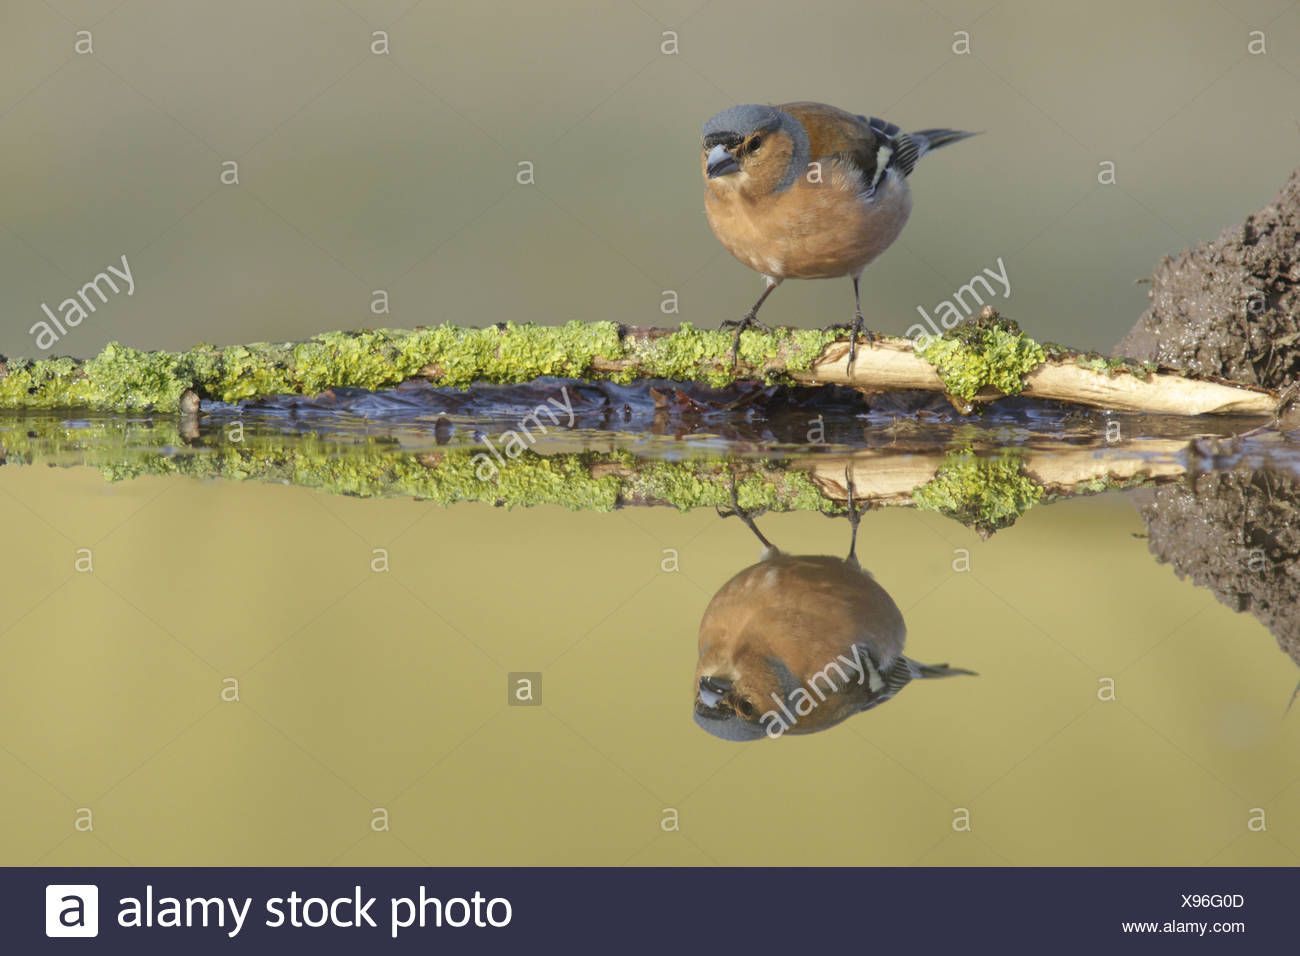 Chaffinch (Fringilla coelebs) adult male perched on lichen covered twig at edge of pool with reflection West Yorkshire England - Stock Image